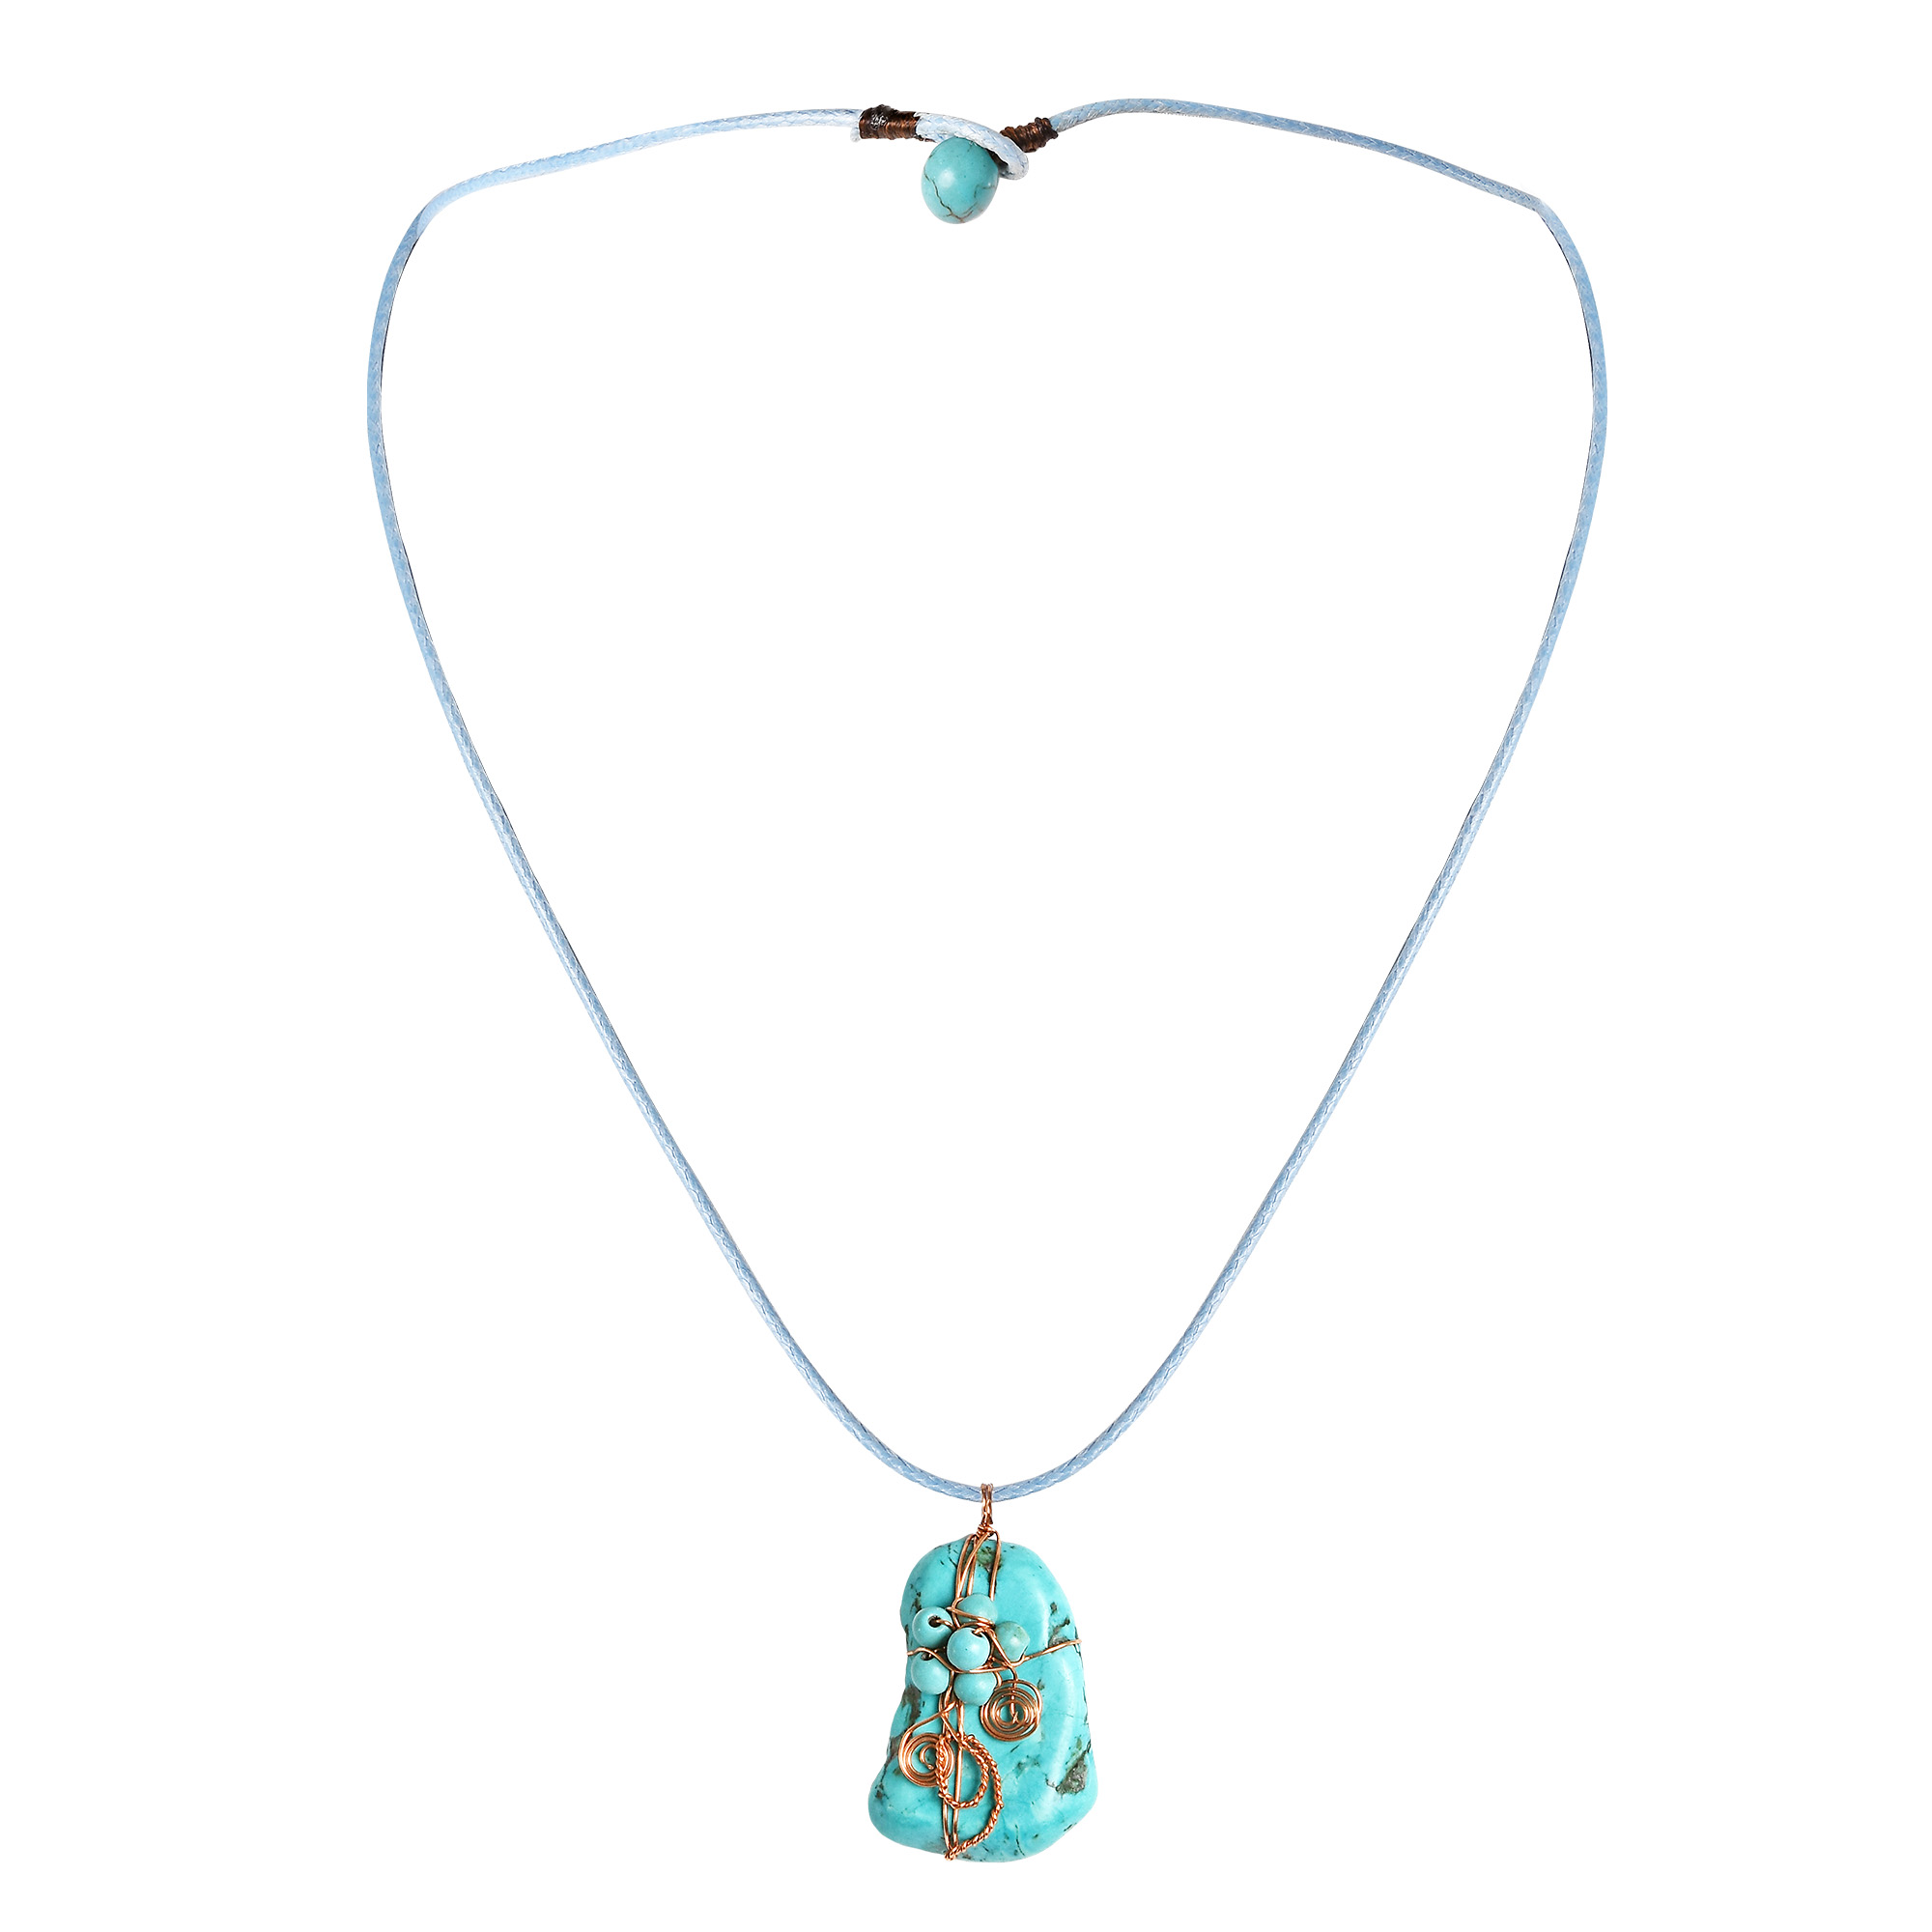 products beautiful stones by knotted turquoise red clusters design features or hand thailand pendant details crafted artisan this btq reconstructed necklaces handmade necklace stone tor in grace aeravida blue oval from ns